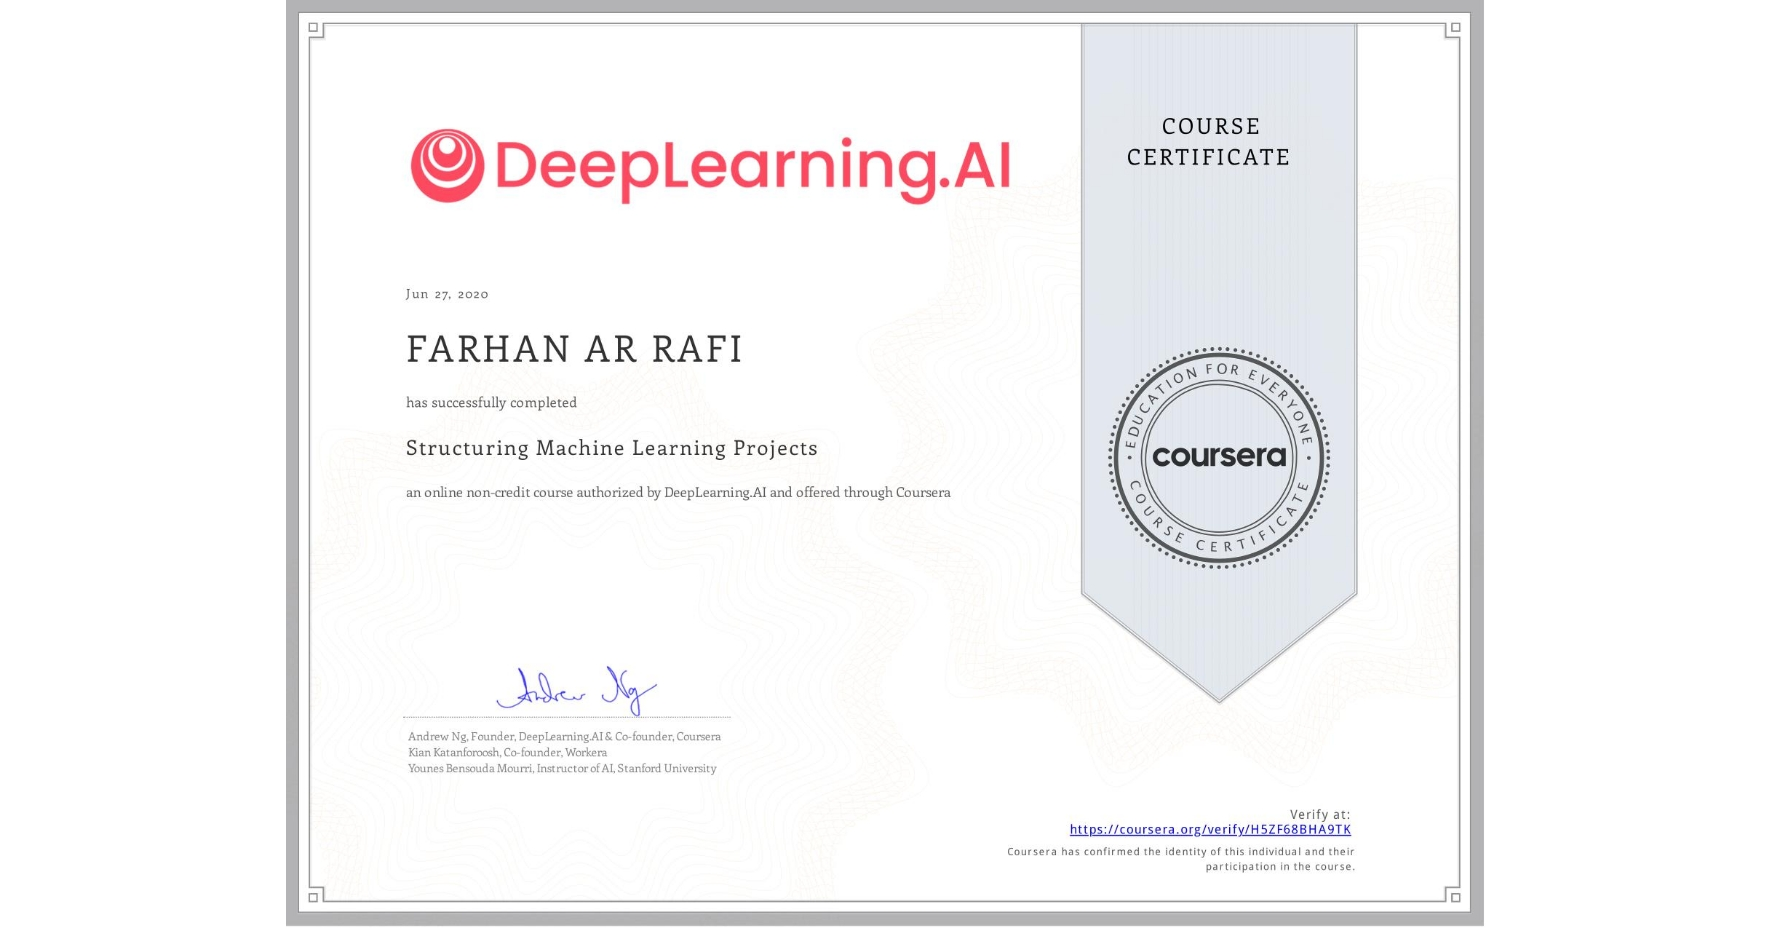 View certificate for FARHAN AR  RAFI, Structuring Machine Learning Projects, an online non-credit course authorized by DeepLearning.AI and offered through Coursera